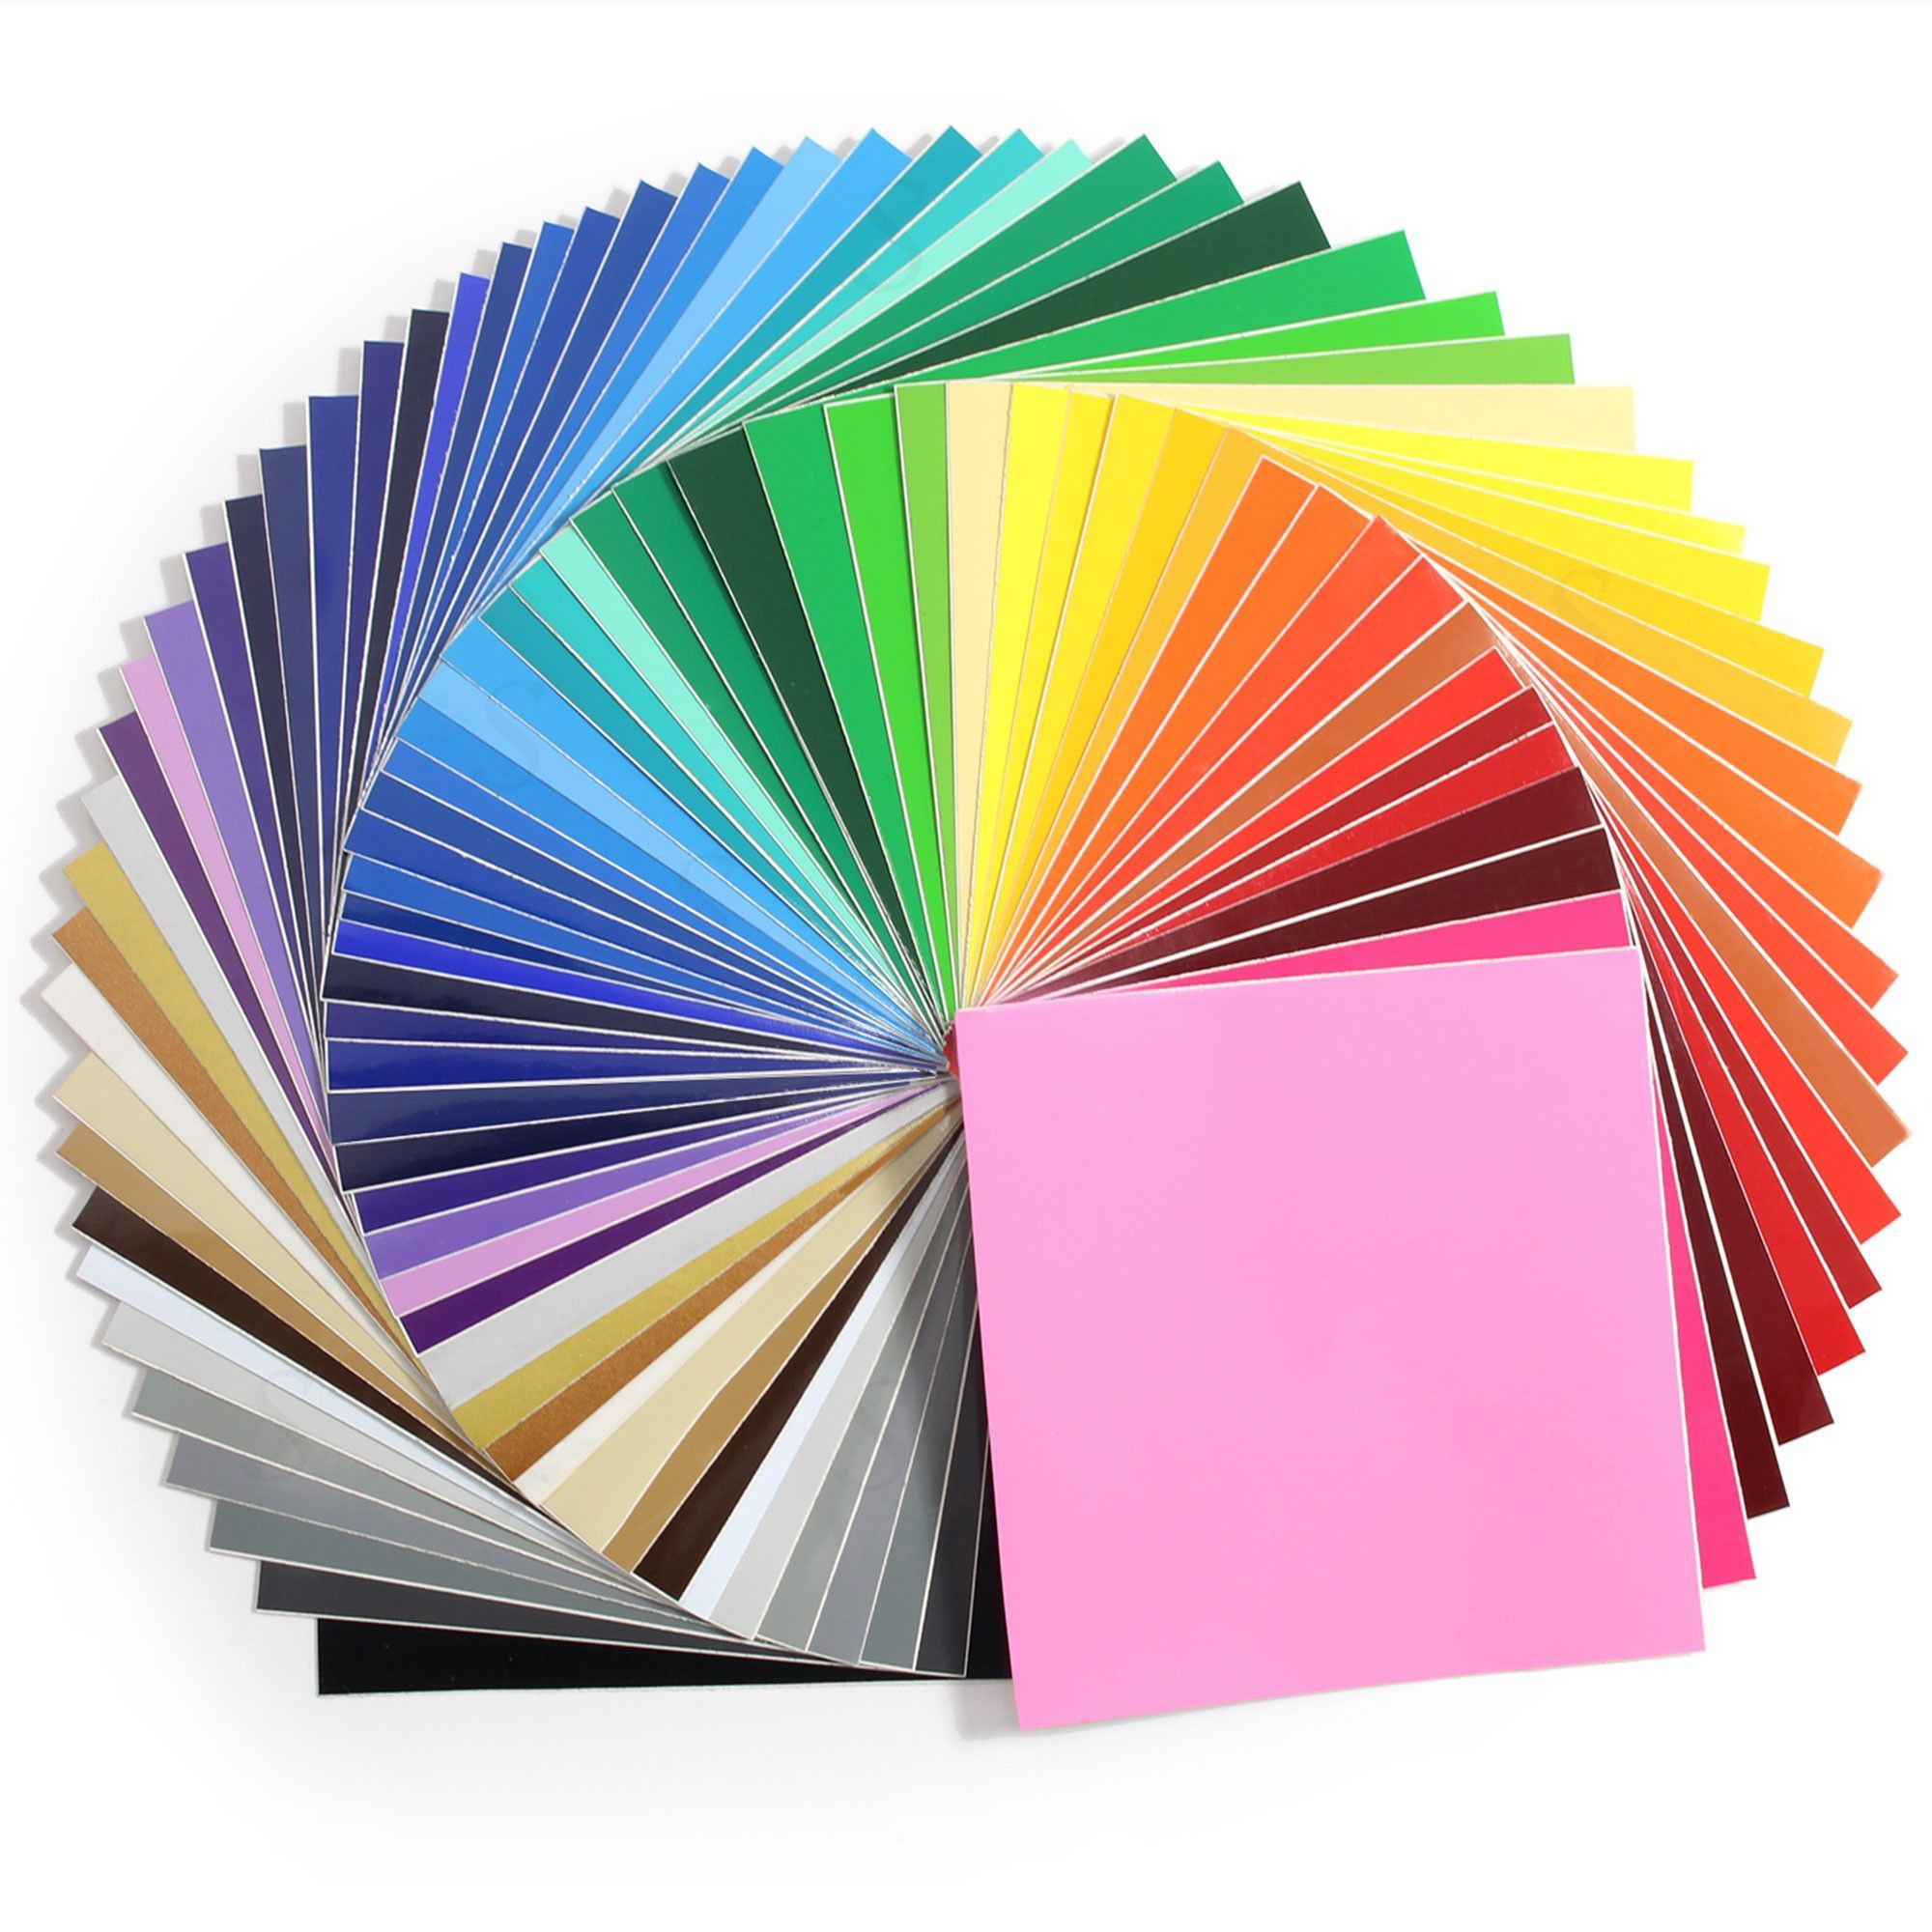 Oracal 651 Vinyl Bundle 12 X 12 61 Assorted Colors Adhesive Vinyl Sheets Cricut Supplies Cricut Vinyl